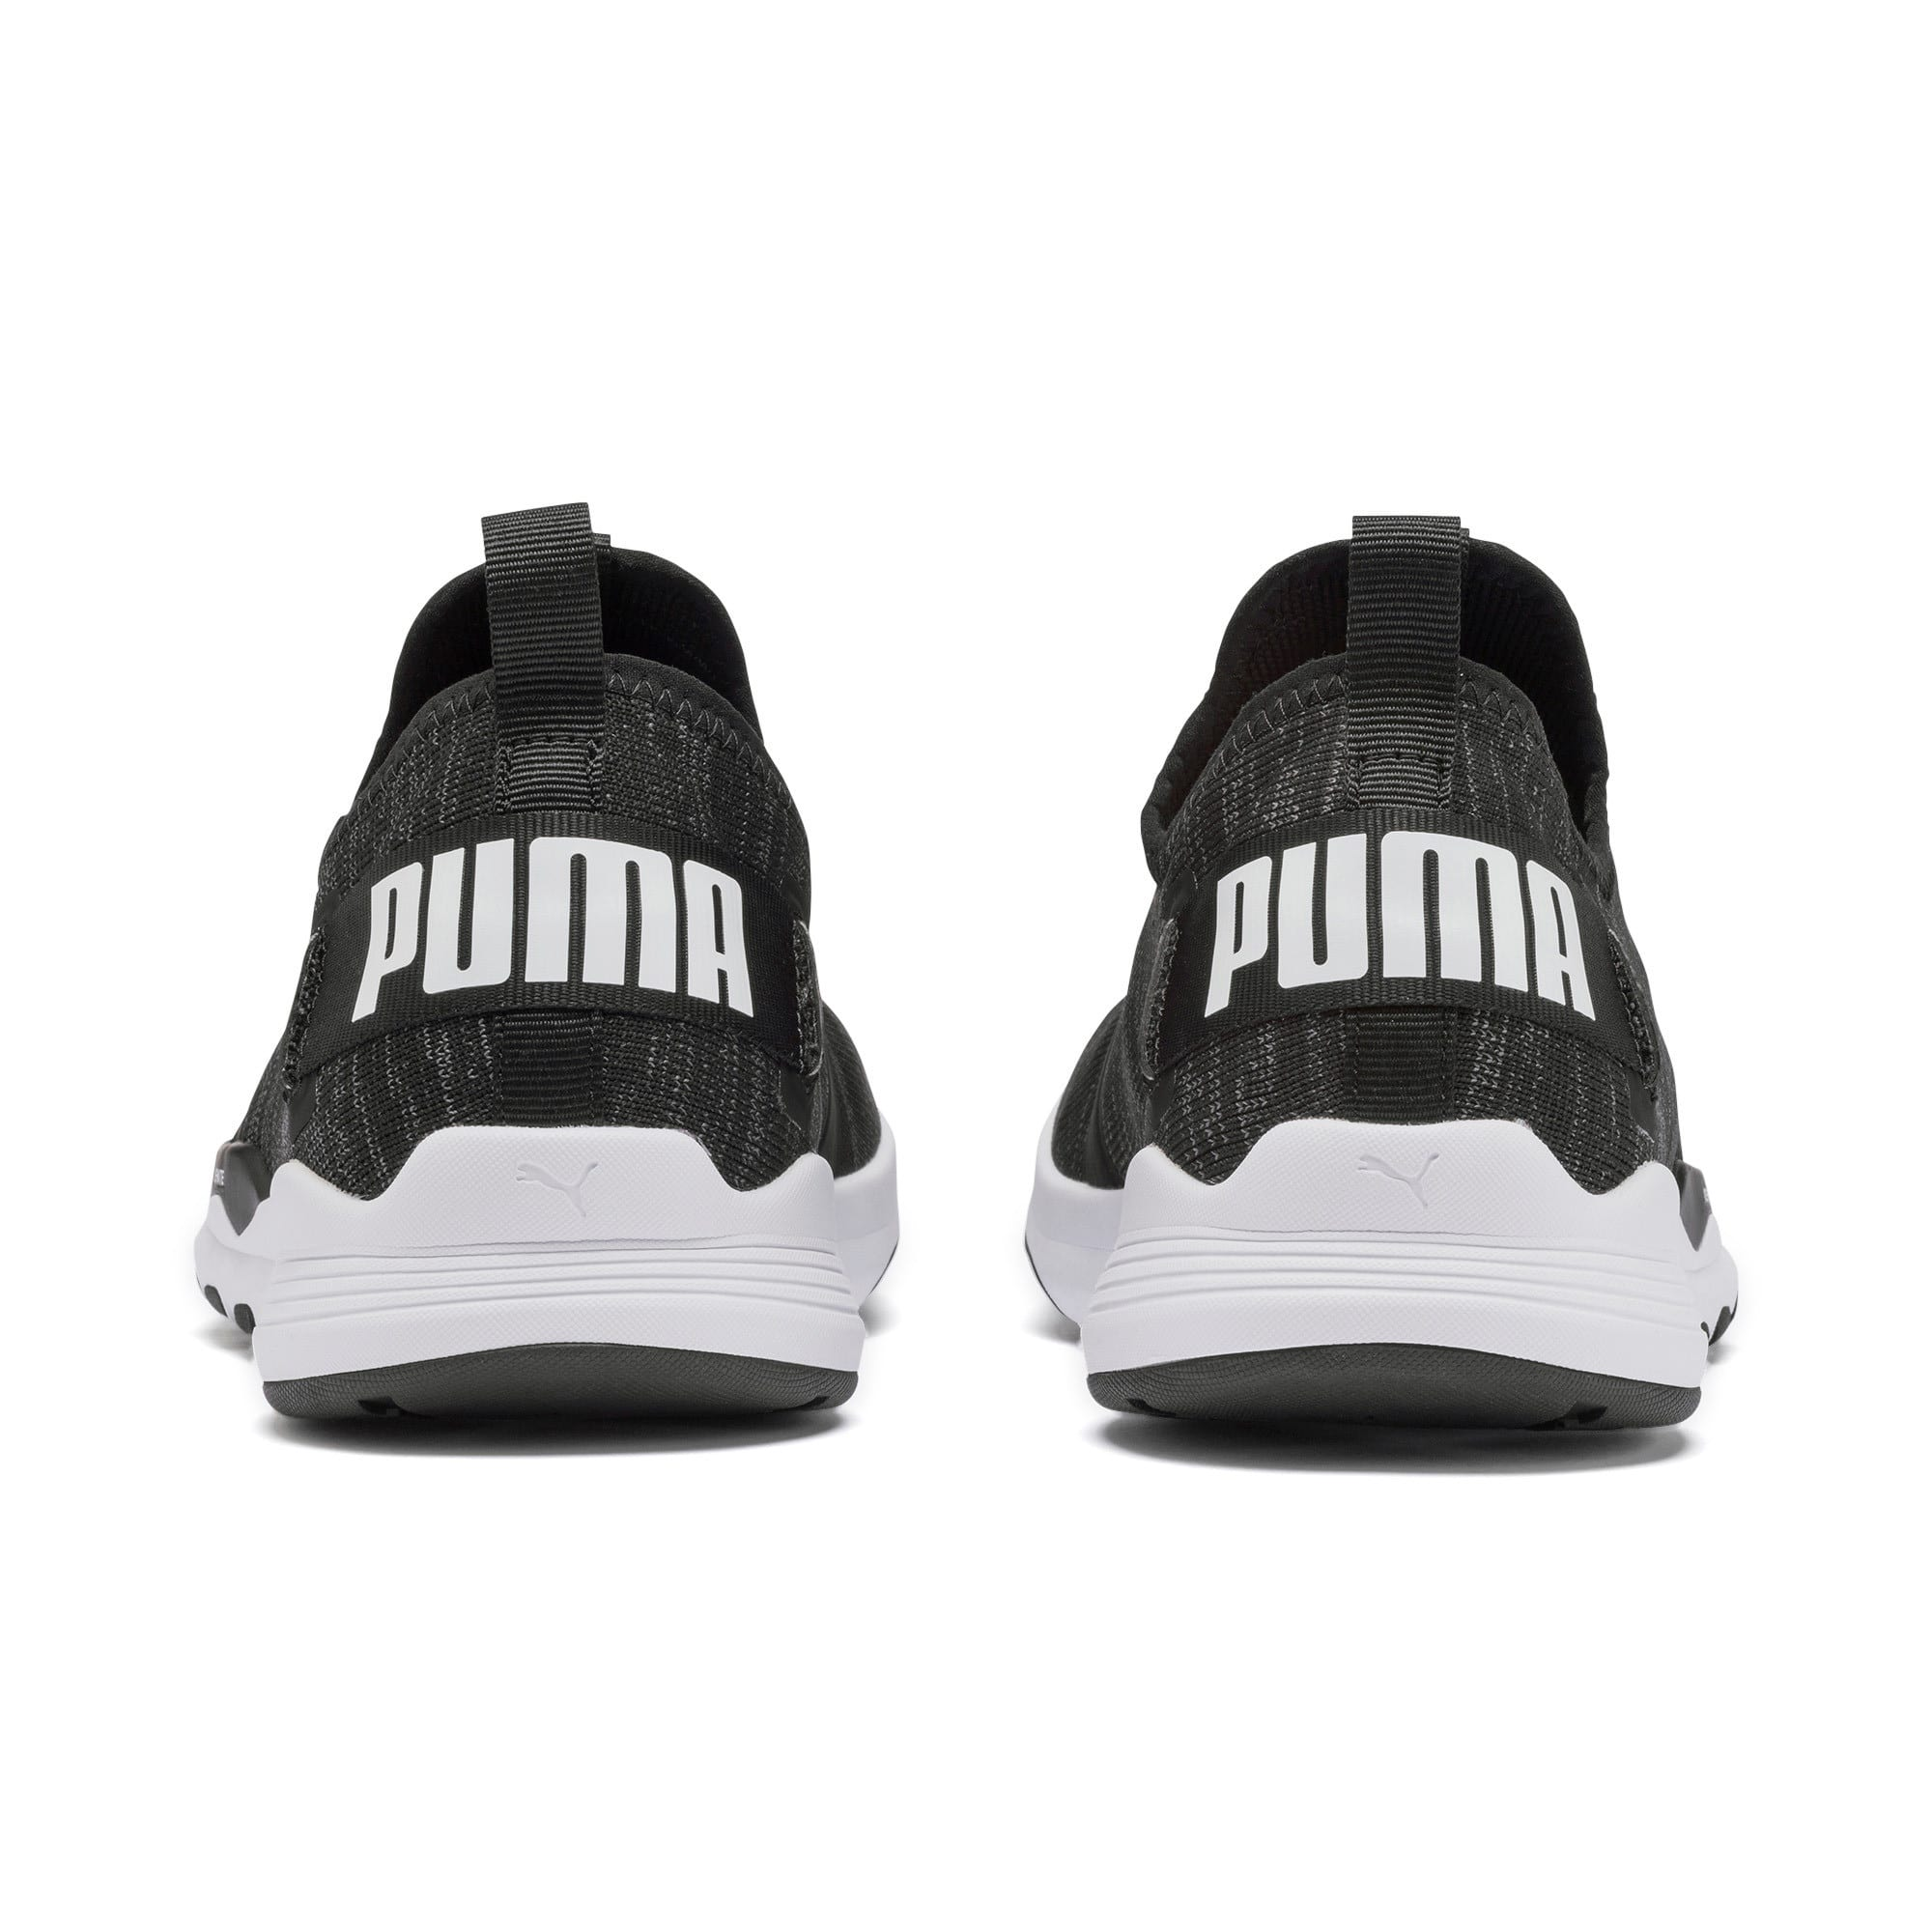 Thumbnail 5 of IGNITE Contender Knit Men's Running Shoes, Puma Black-Puma White, medium-IND